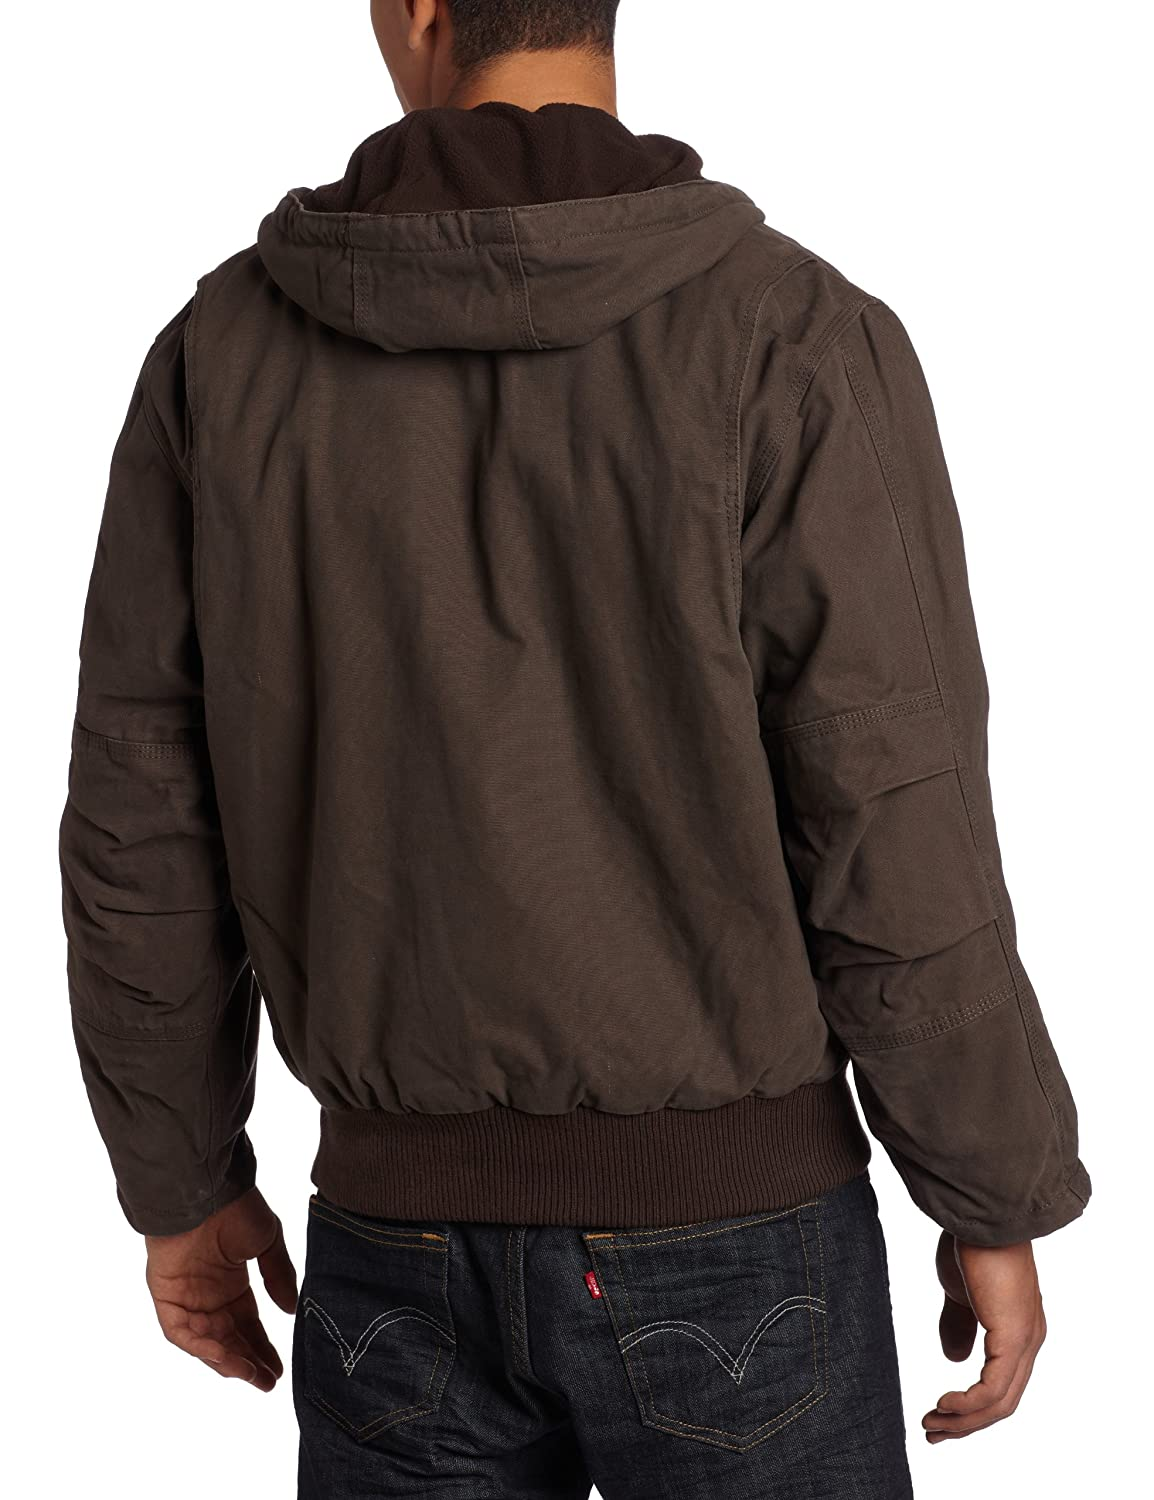 Key Industries Men's Premium Fleece Hooded Jacket